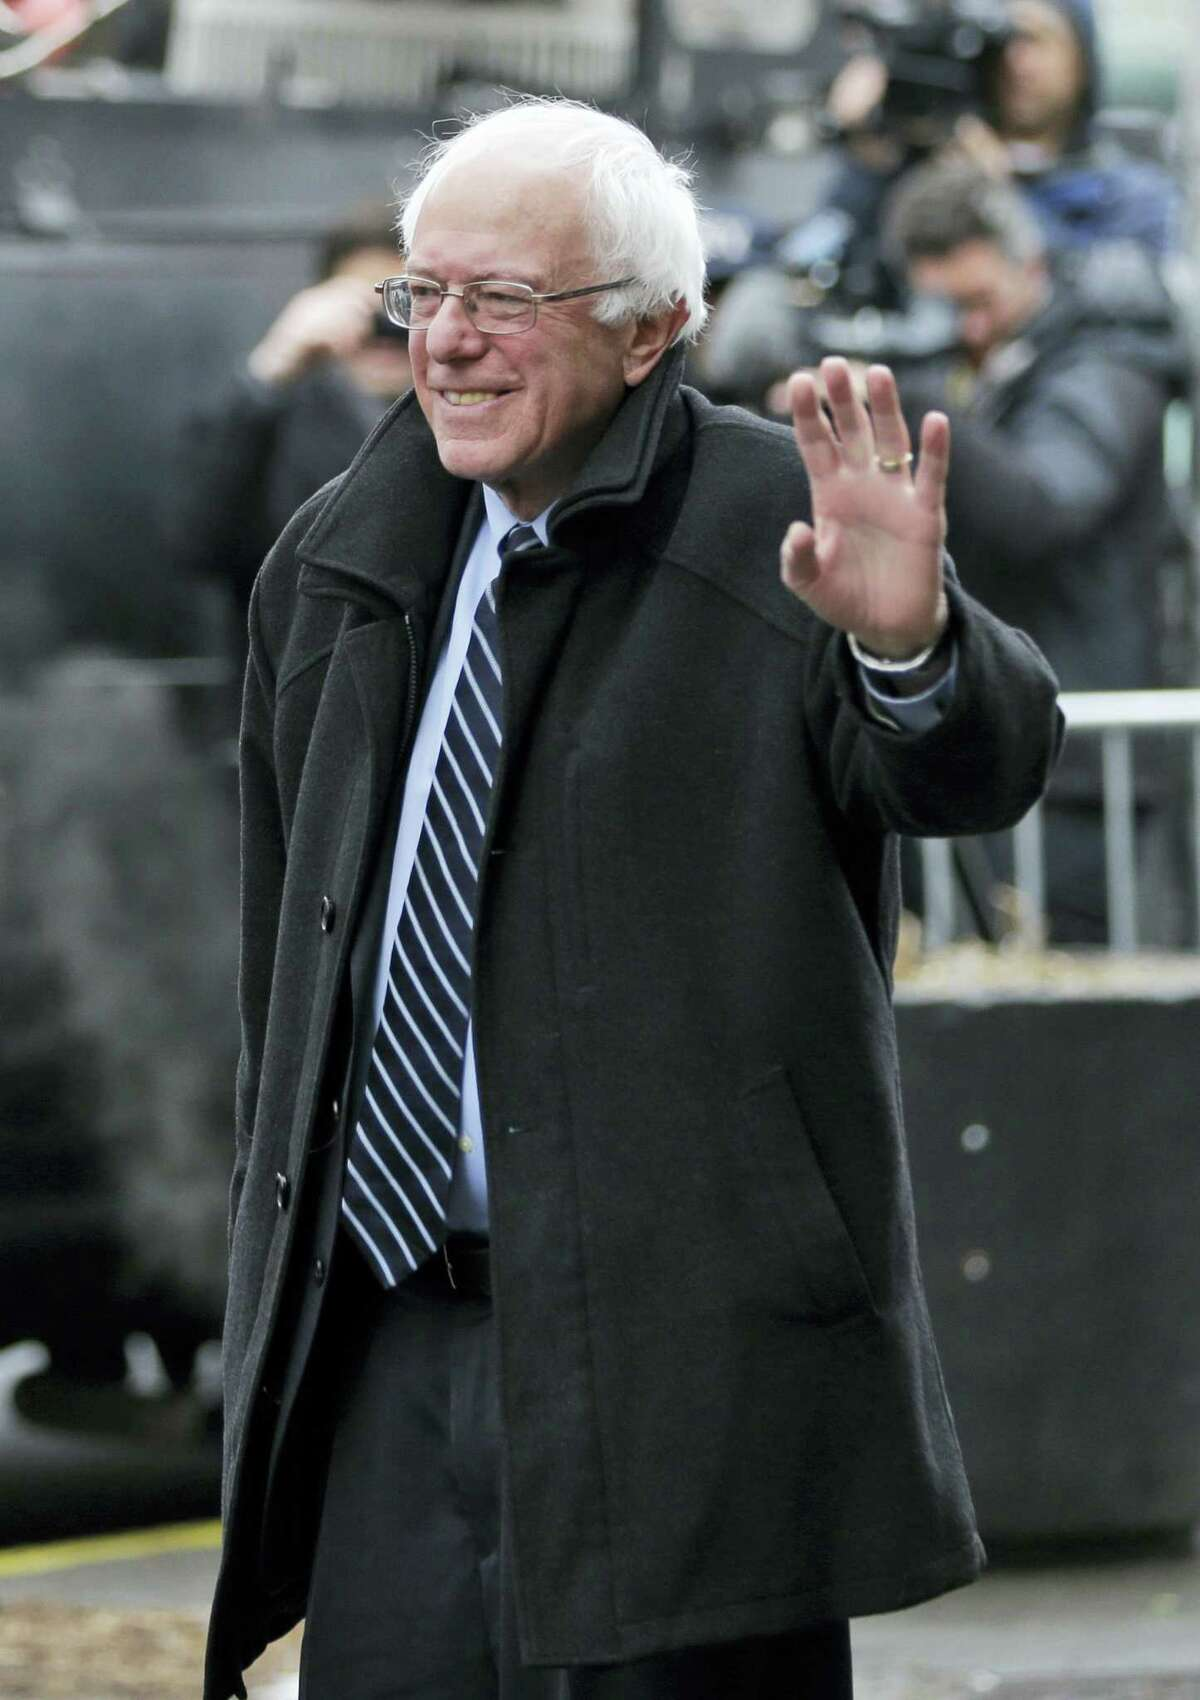 Democratic presidential candidate Sen. Bernie Sanders, I-Vt., waves to media and supporters as he arrives for a breakfast meeting with Rev. Al Sharpton at Sylvia's Restaurant Wednesday in the Harlem neighborhood of New York.